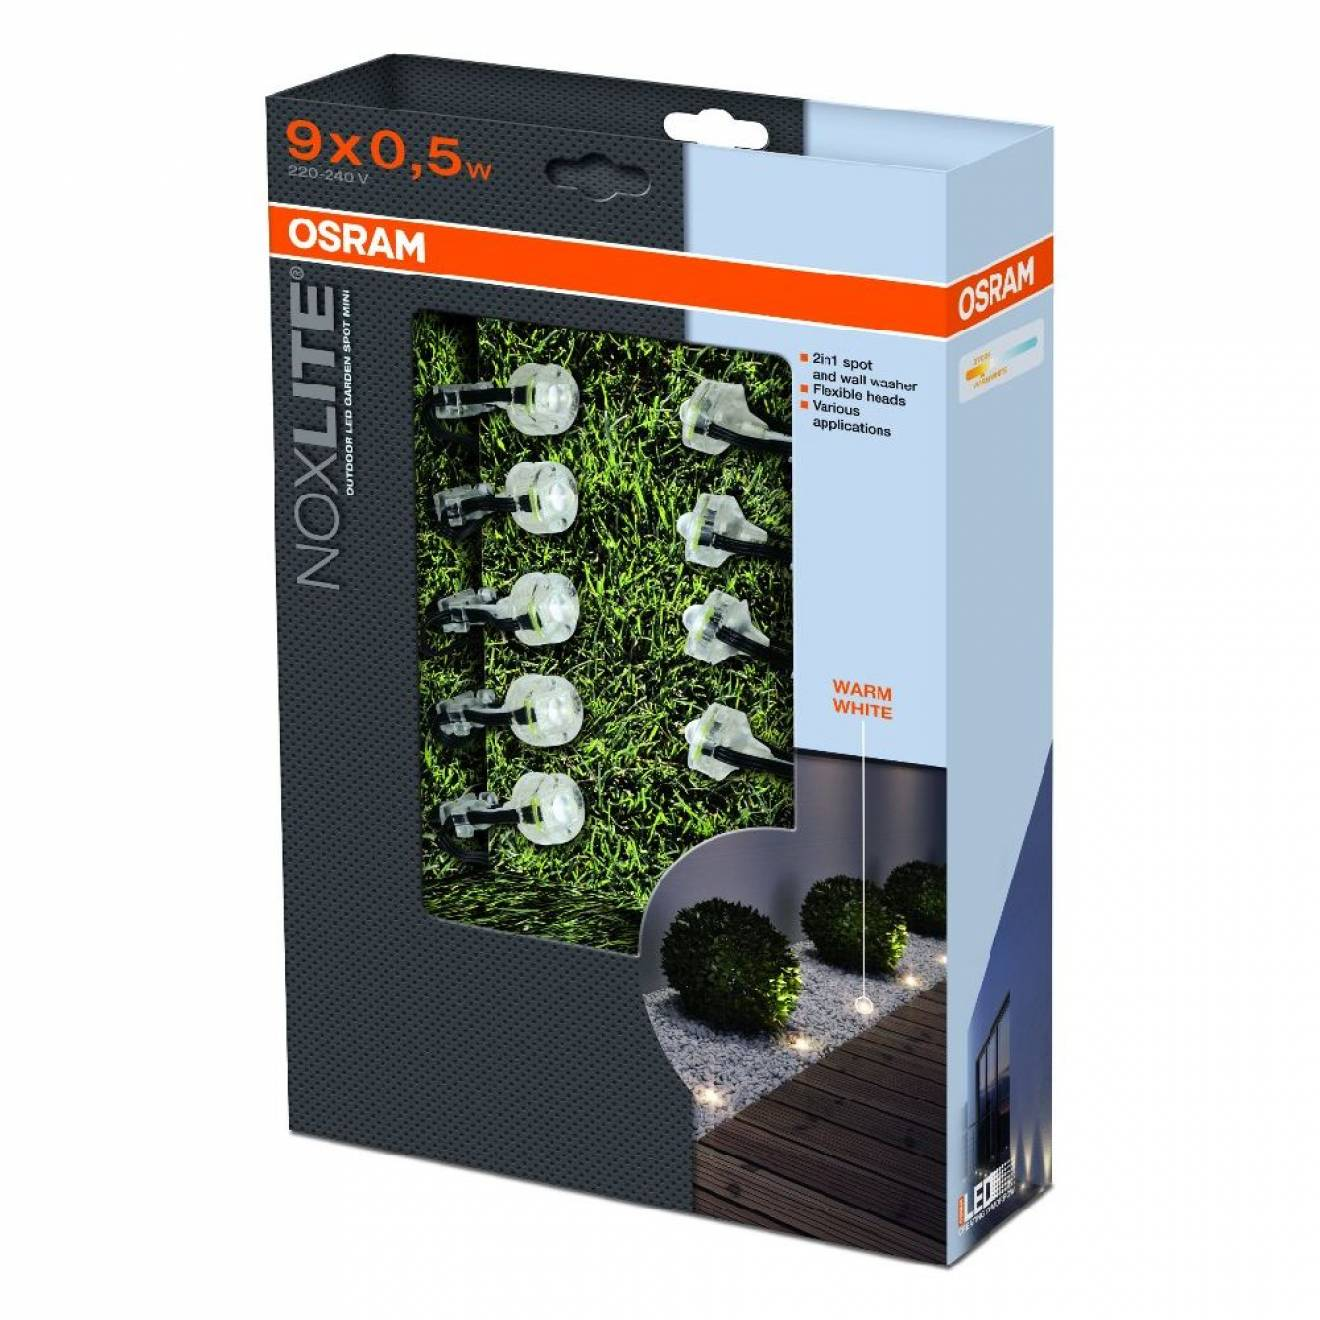 osram noxlite led garden spot mini starter set warm white. Black Bedroom Furniture Sets. Home Design Ideas